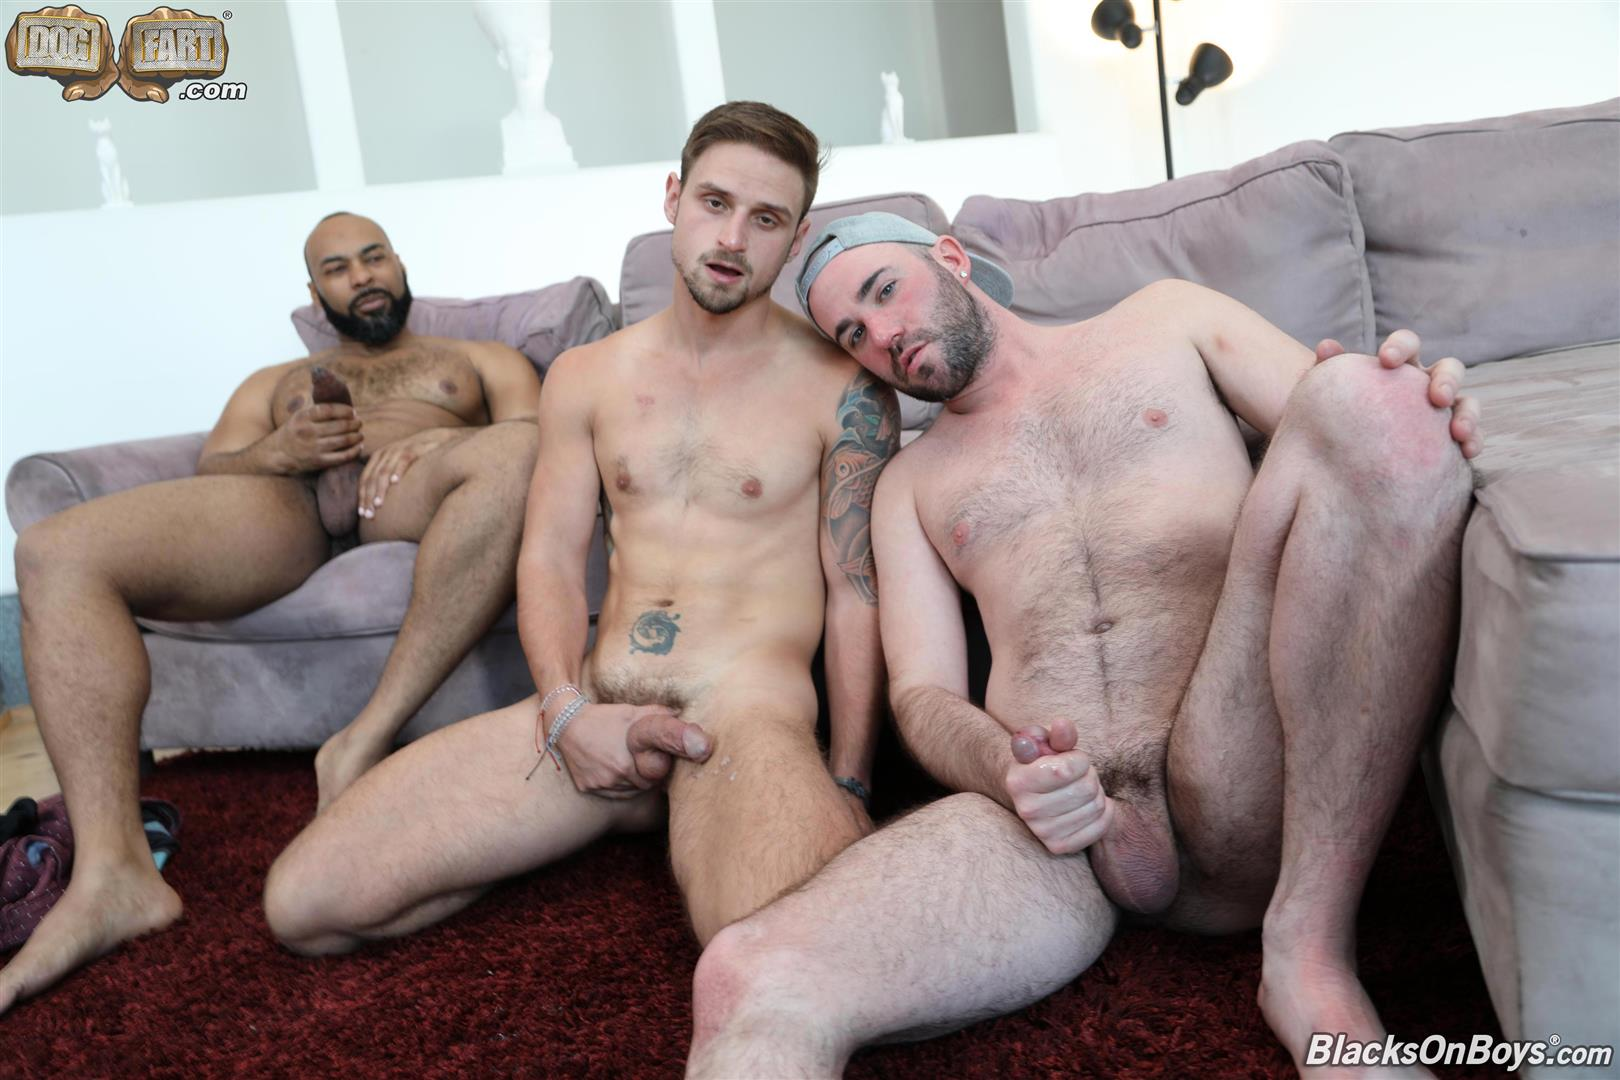 Blacks-on-Boys-Jackson-Reed-and-Alex-Mason-and-Ray-Diesel-White-Guys-Getting-Fucked-By-Big-Black-Cock-30 Even Horny Straight White Guys Like To Experiment With Big Black Cock